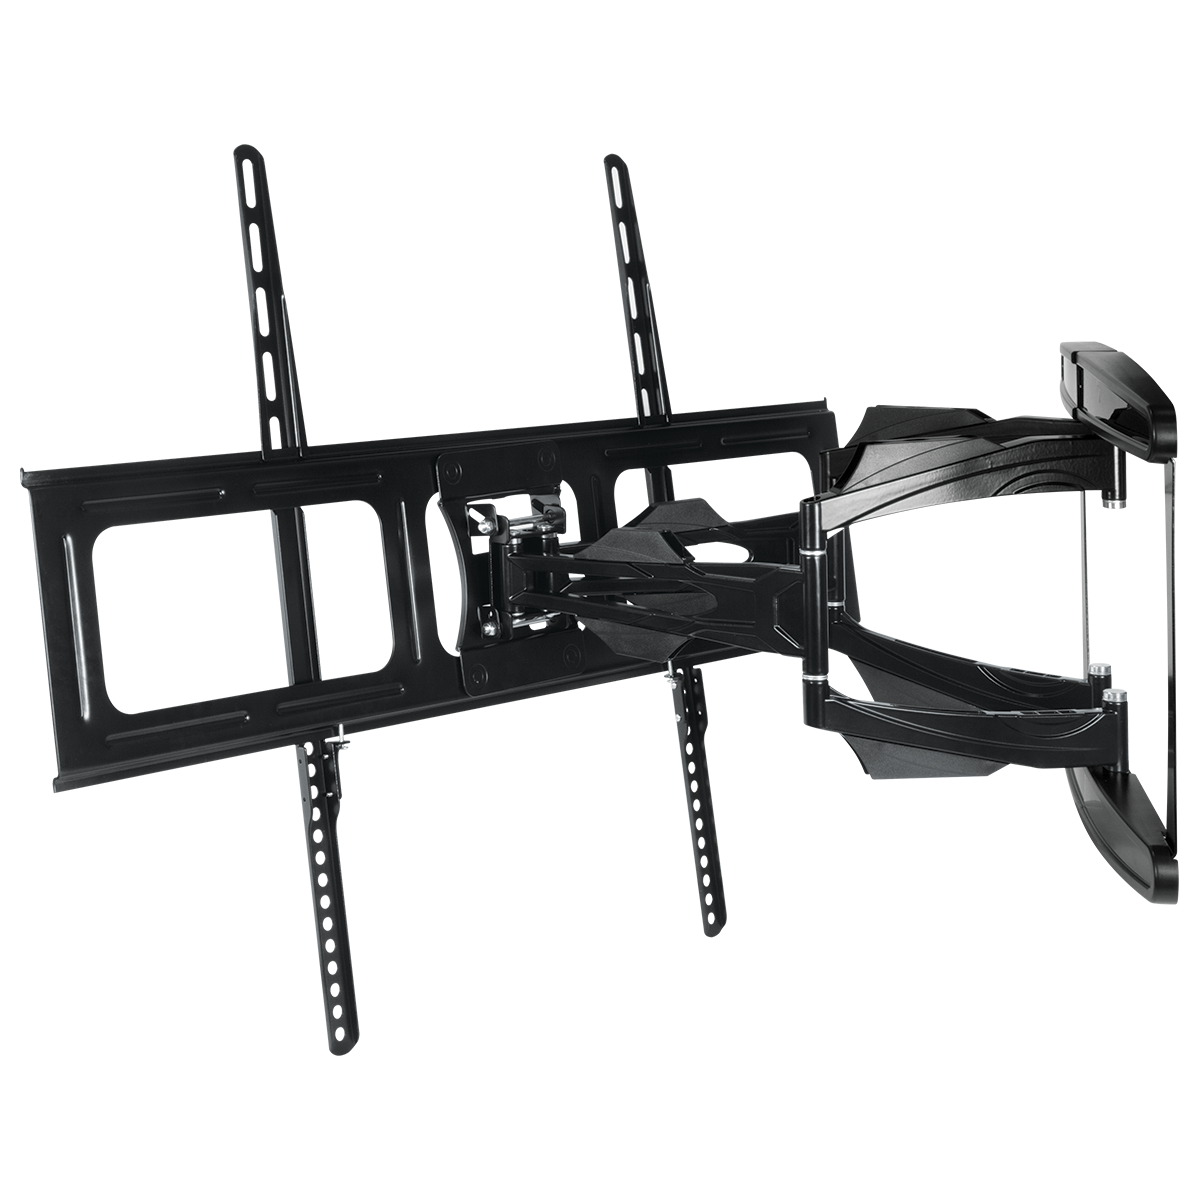 Full-Motion TV Wall Mount for XL TVs ARCTIC TV Flex L